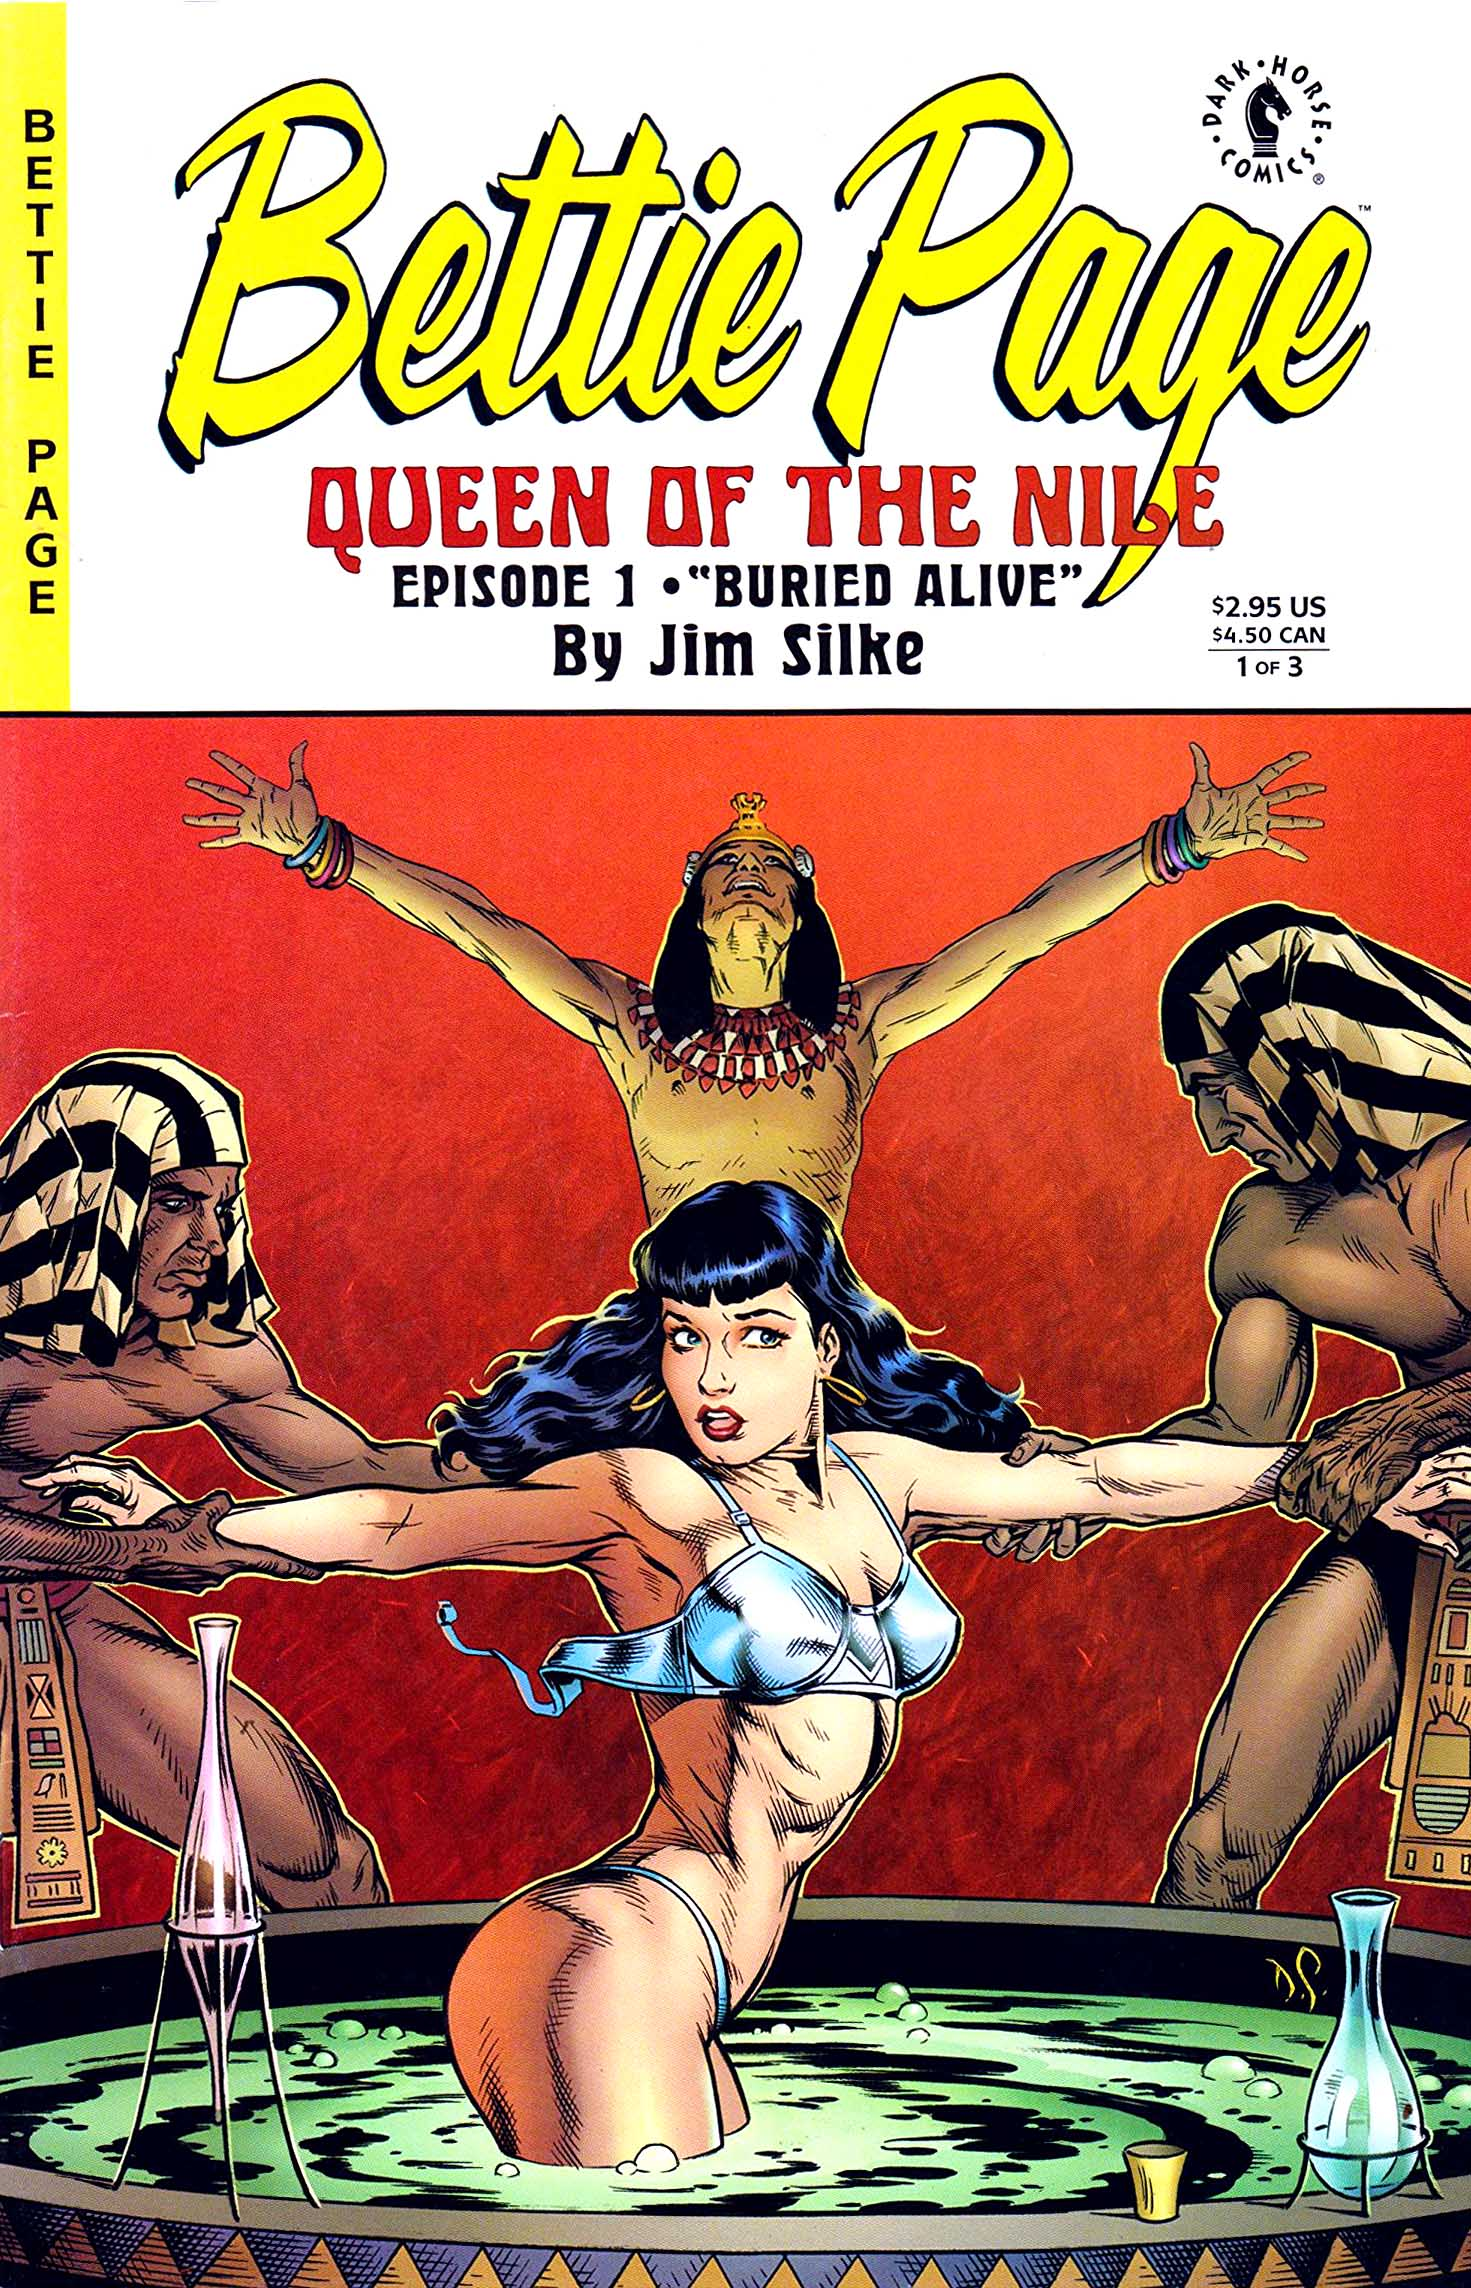 Bettie Page Queen of the Nile #1 (1999) by Jim Silke